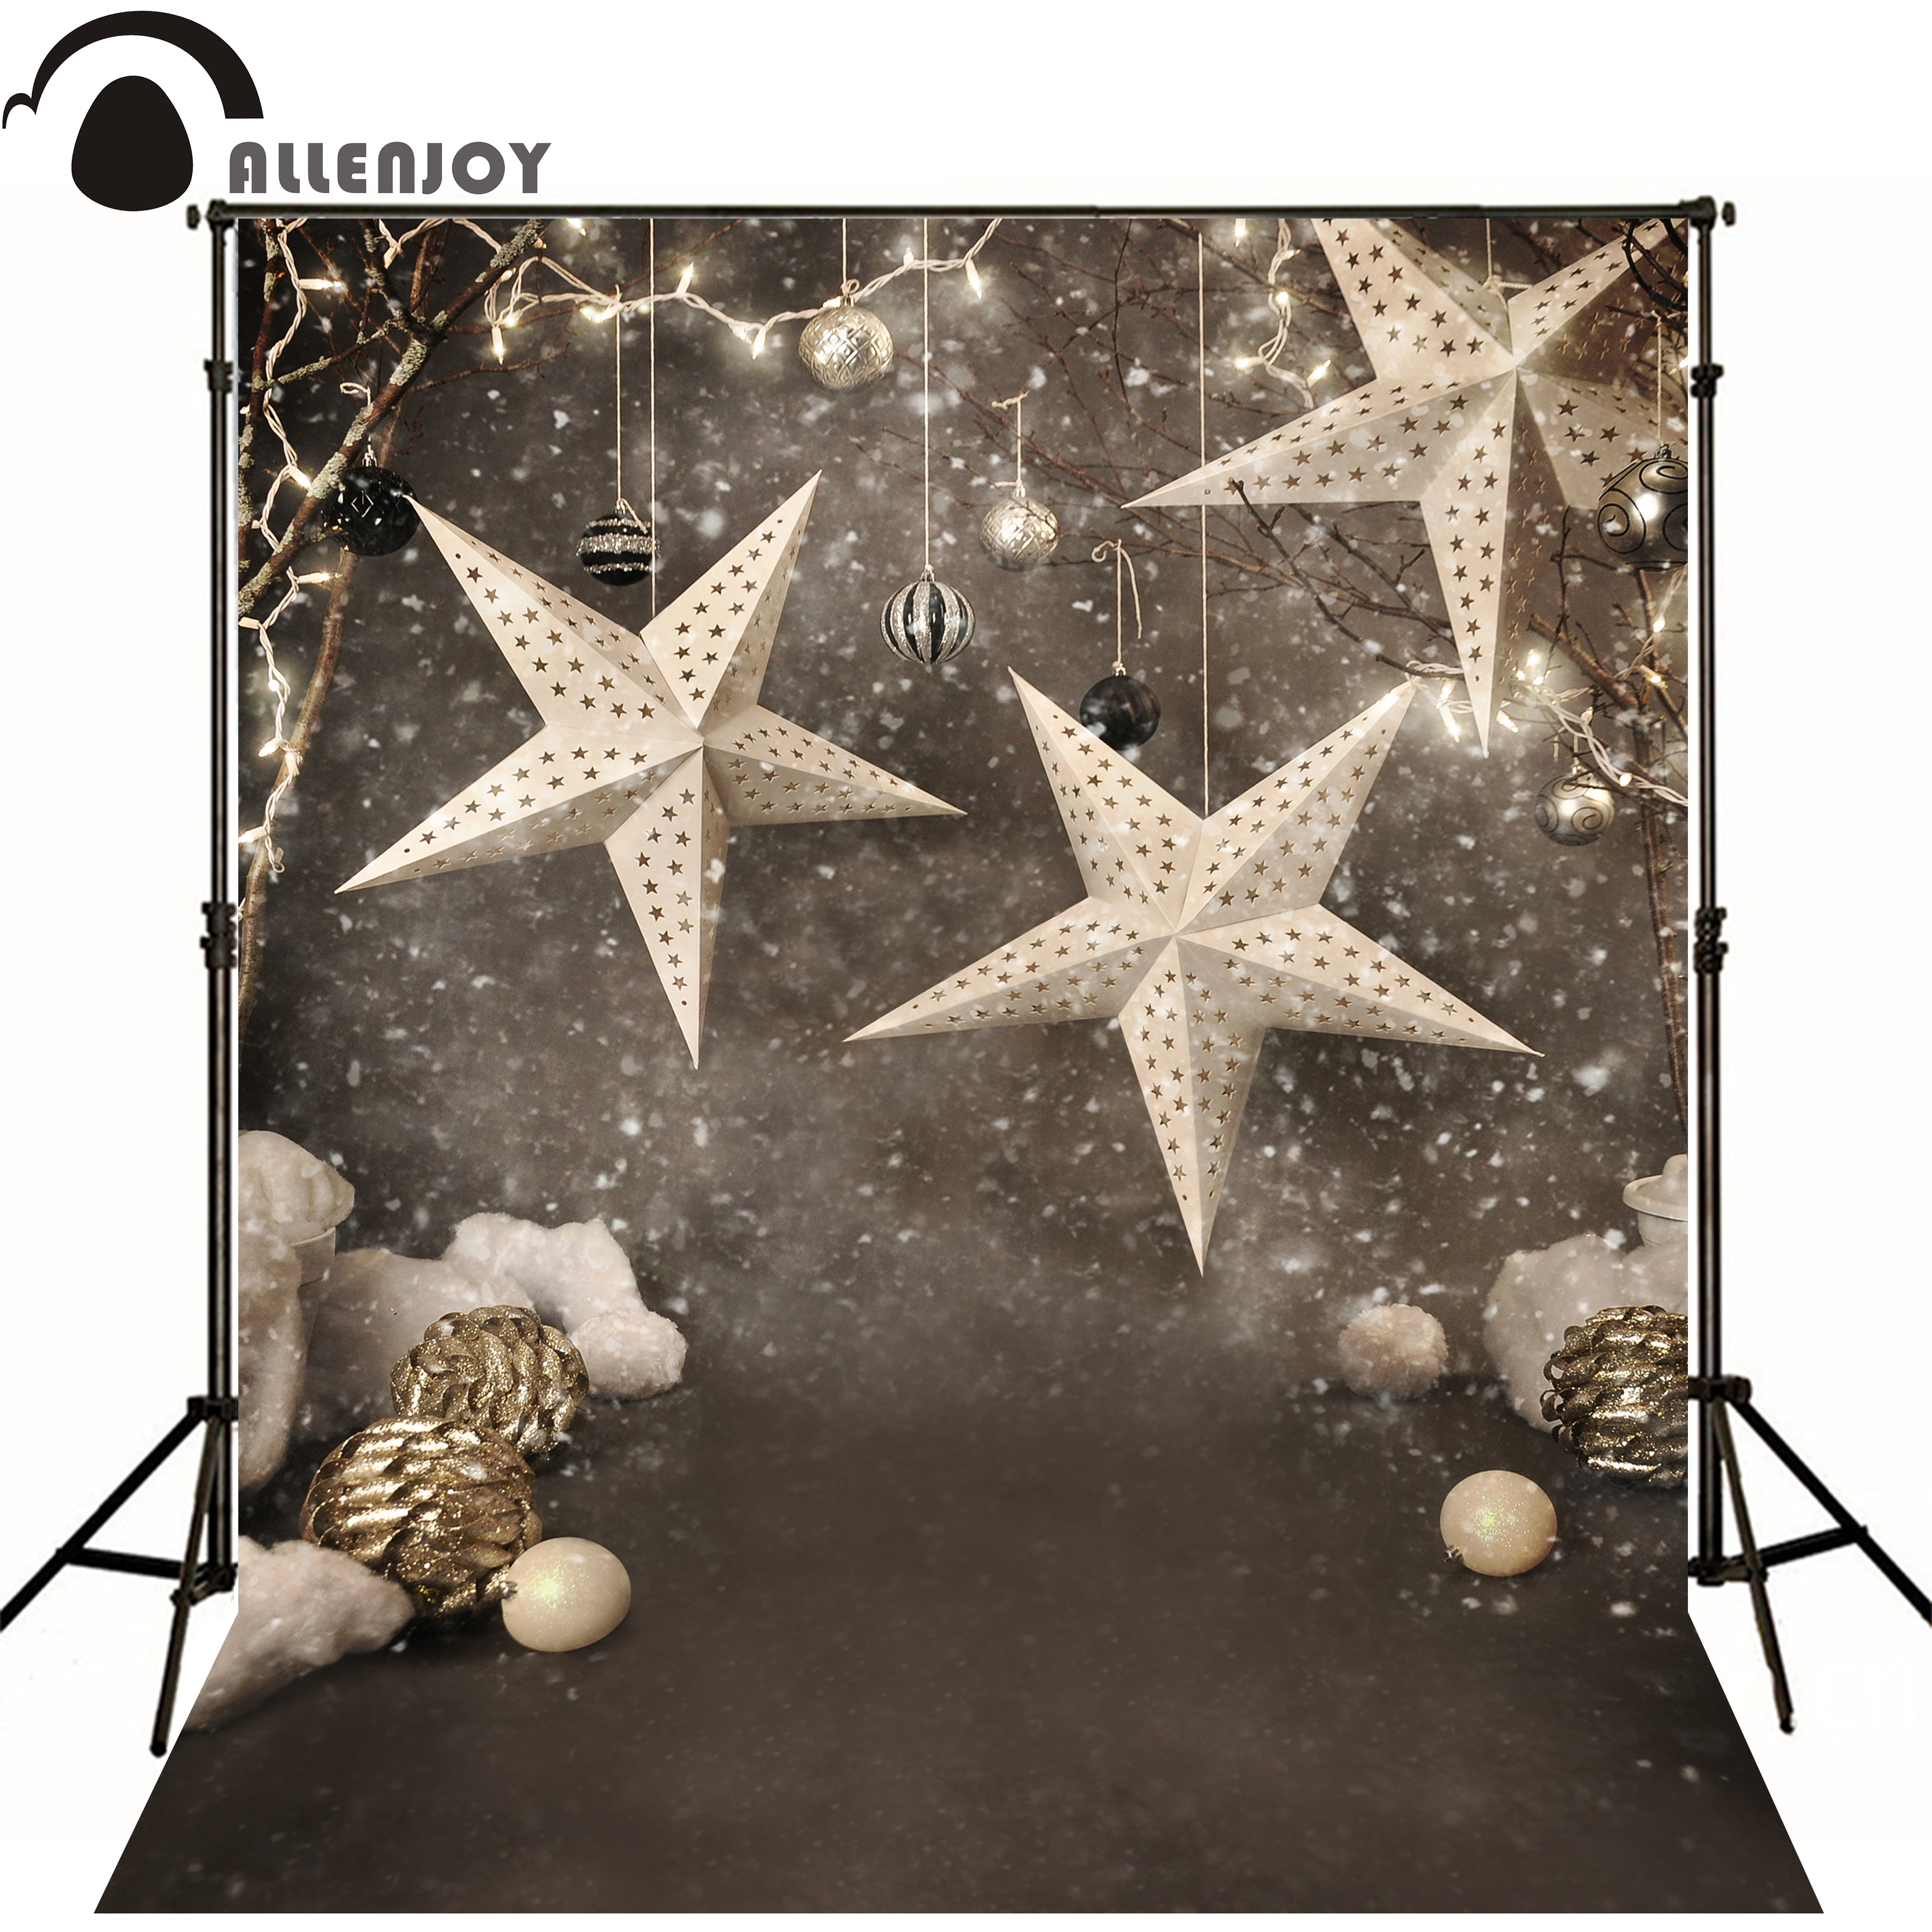 Christmas New years background photography Star Snowflake fun original design vinyl backdrops studio new original xs7c1a1dbm8 xs7c1a1dbm8c warranty for two year